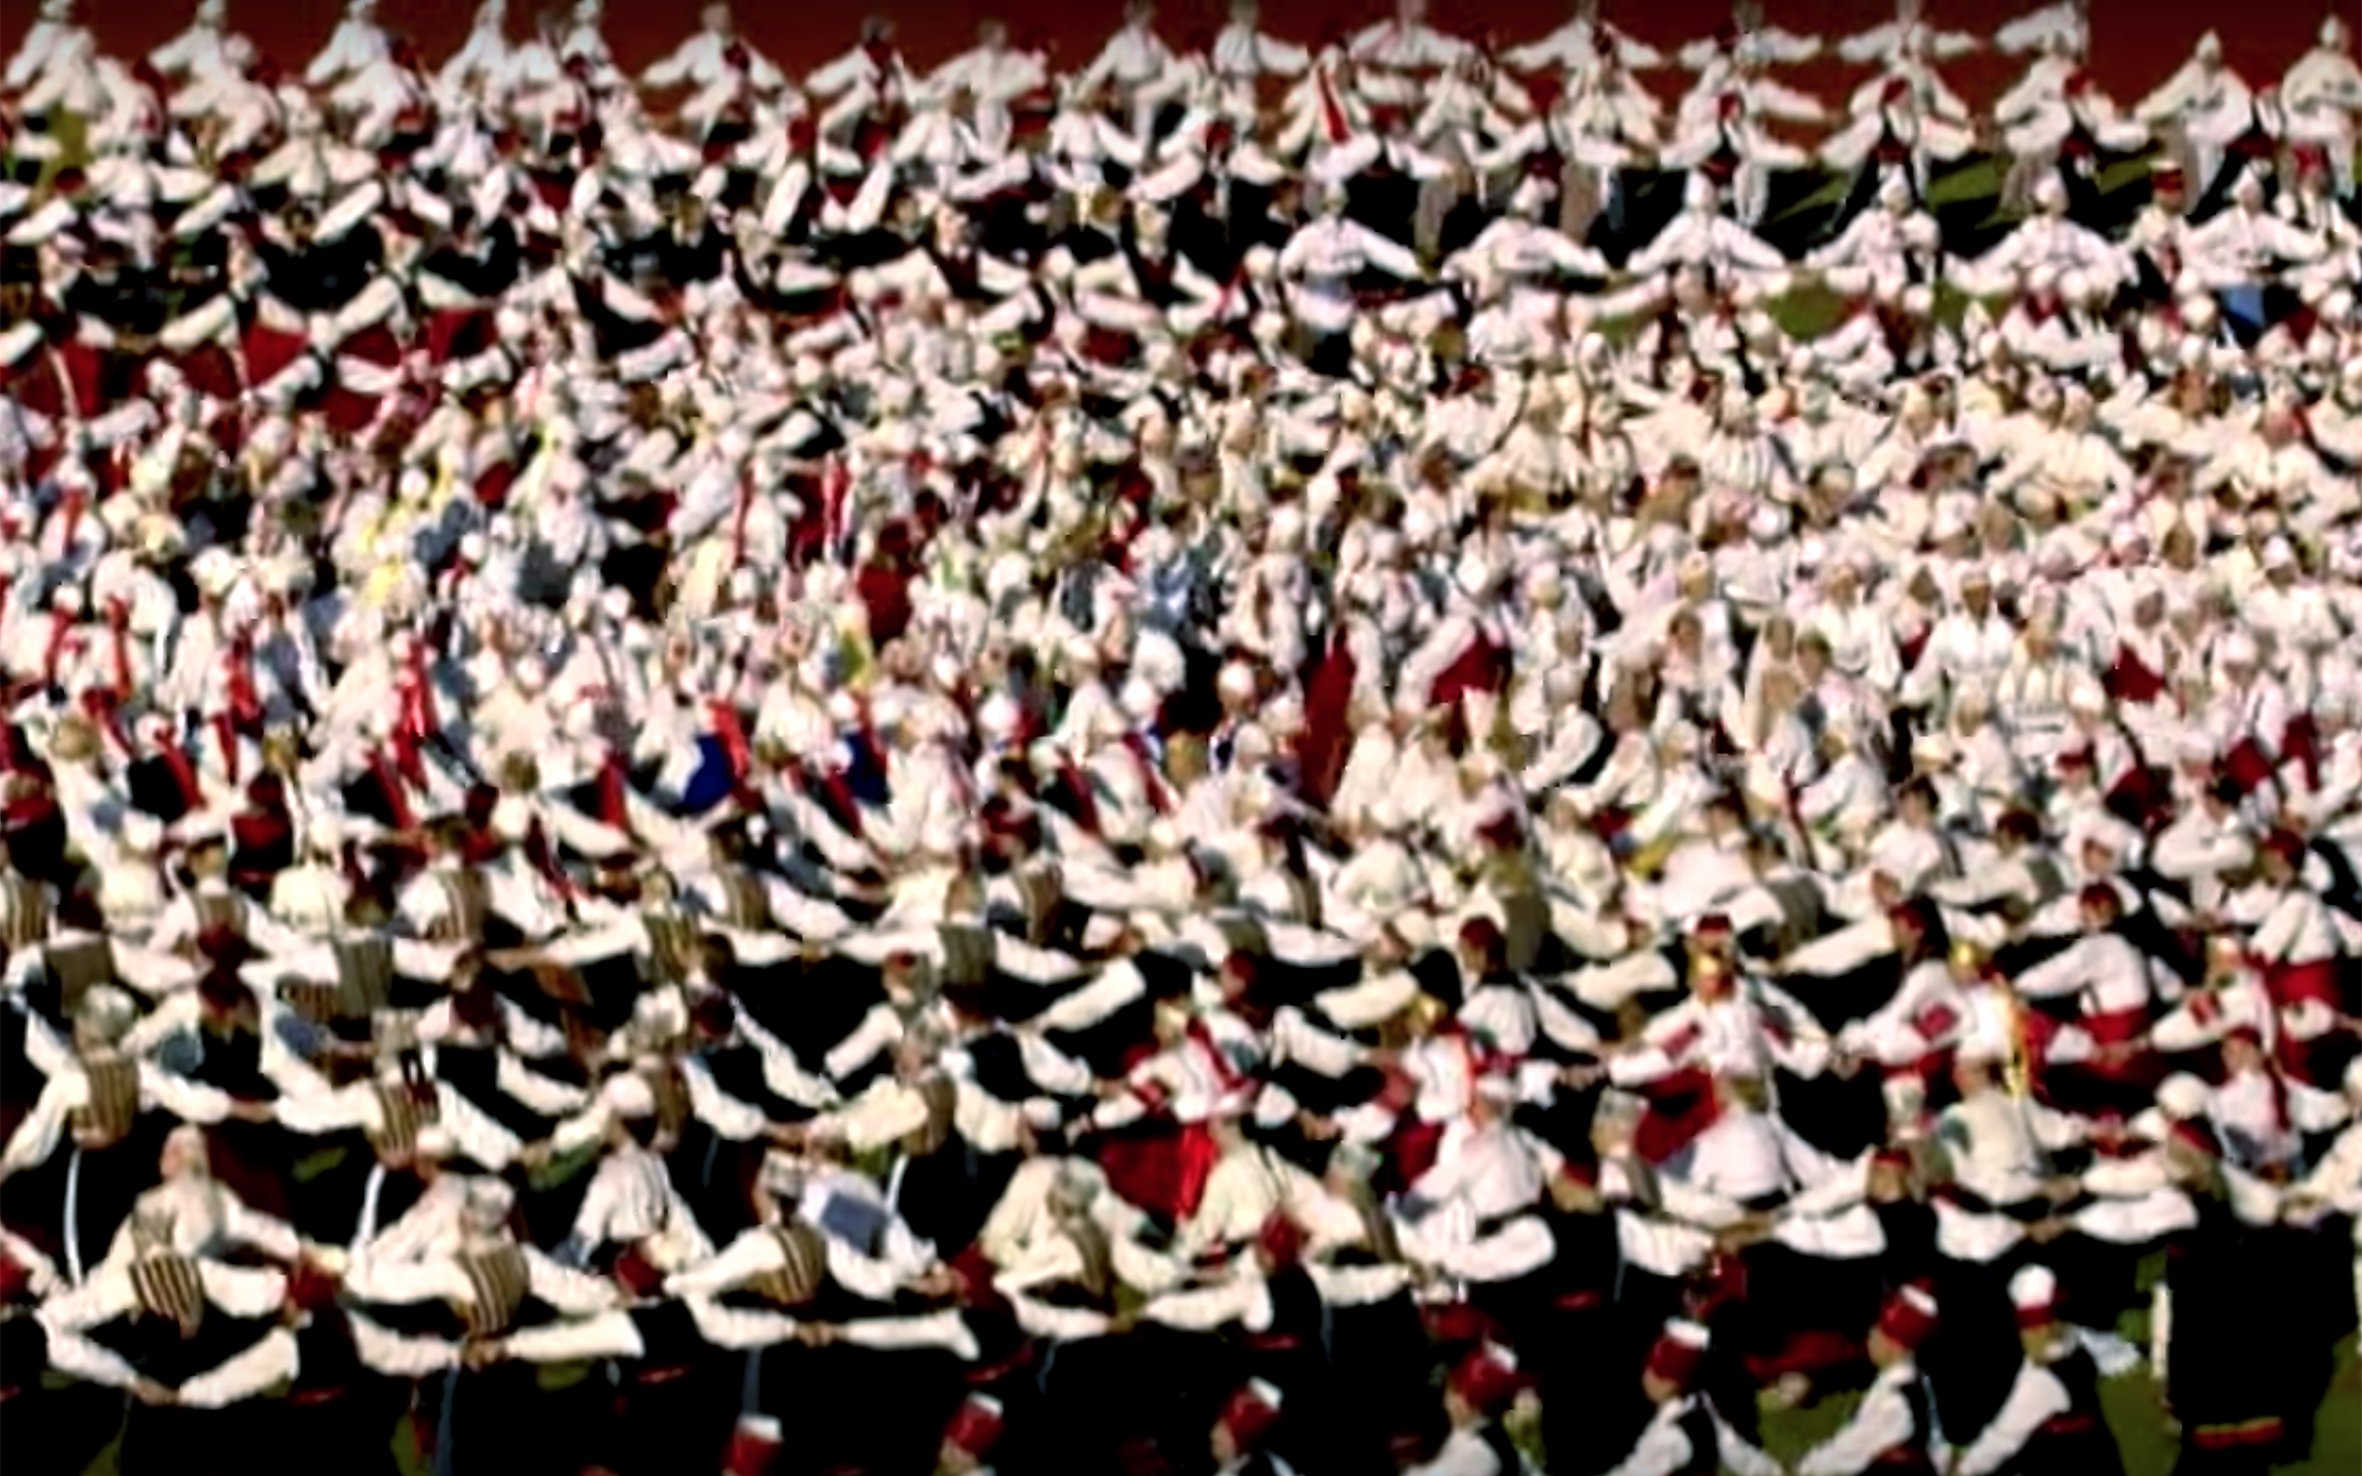 271.Estonian Folk Dance / Estonia - Estonian Folk Dance is considered to be collective, peaceful and dignified. There are no big leaps or fast and varied movements, and acrobatic elements are uncommon. It can be best characterised as a series of repeated motifs and simple patterns of movement. Repetitive motifs are actually characteristic of all Estonian folk art - they can be found in folk poems, ornamentation on belts, woodwork , etc. Old Estonians thought that dancing had a powerful and magical influence on the surrounding world. Dance was an inseparable component of festivities. Estonian folk dance consists of simple steps in a circle or in a line. A lead dancer or a pair of lead dancers would show the others the direction of steps or the sequence to be followed. Typical Estonian folk dance is Labajalavalss.